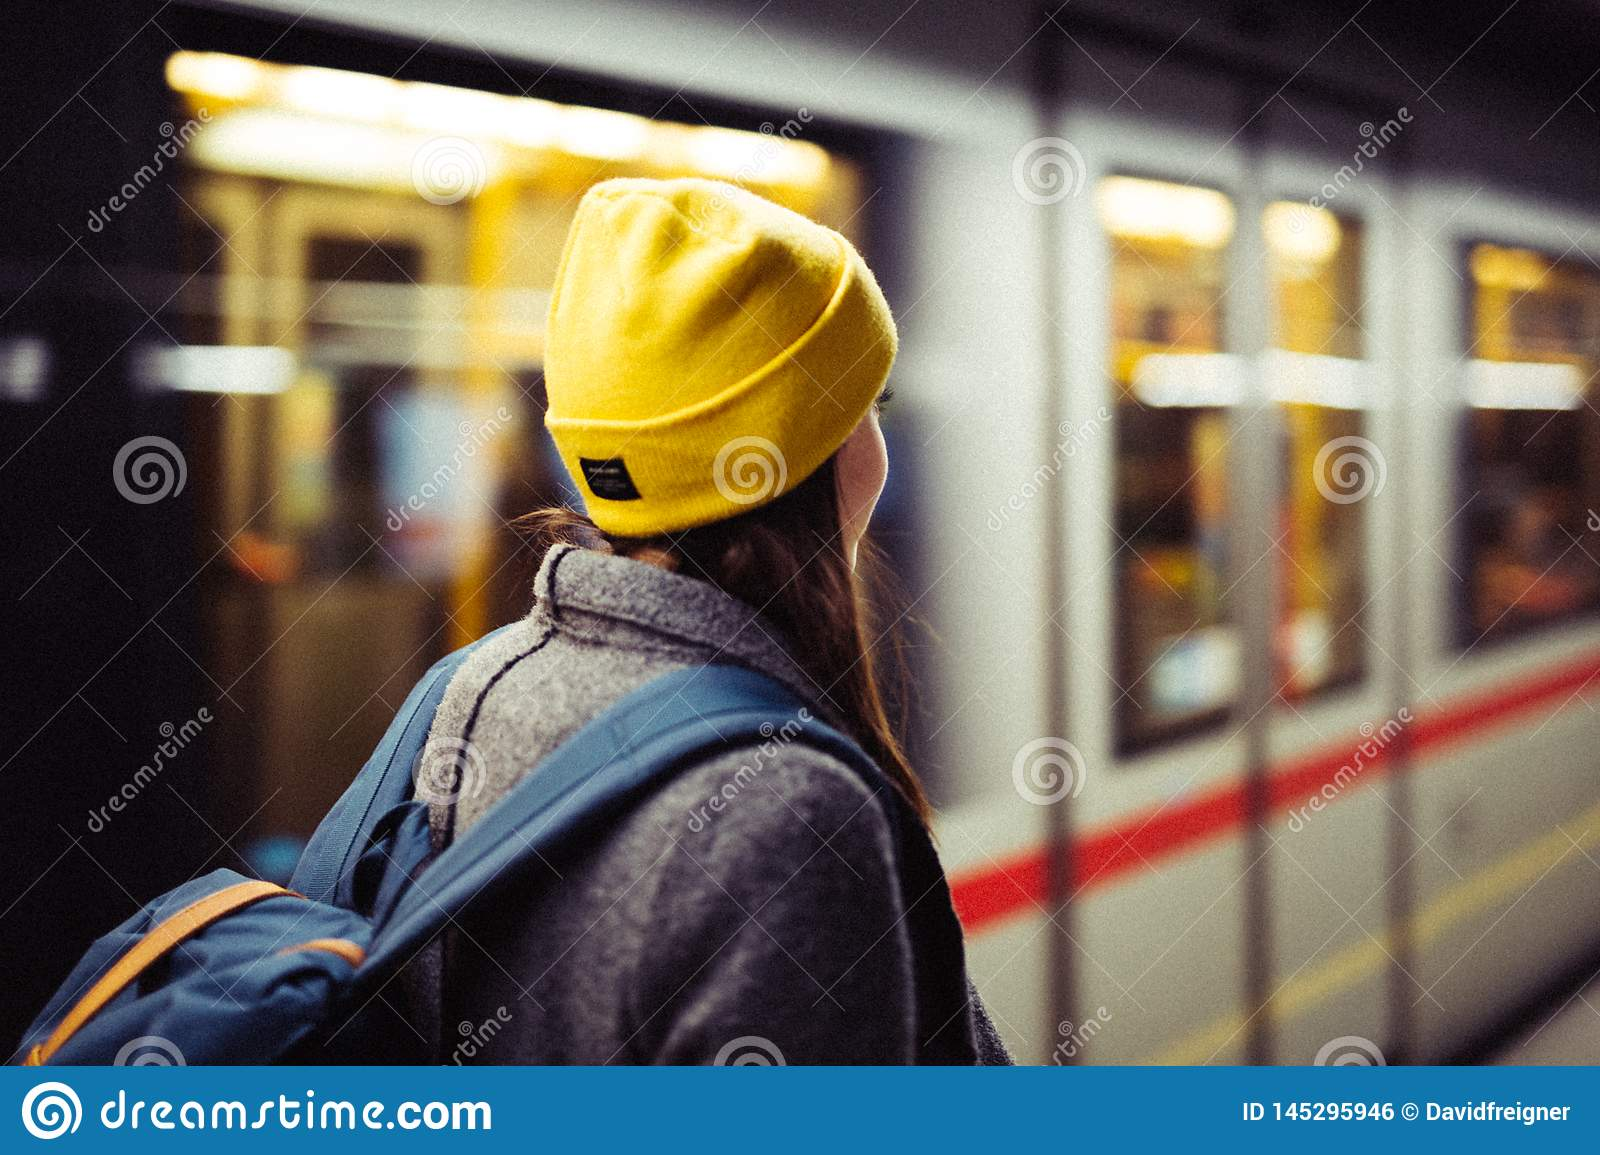 Young woman waits at the metro station while the train arrrives. Transportation and travel concept